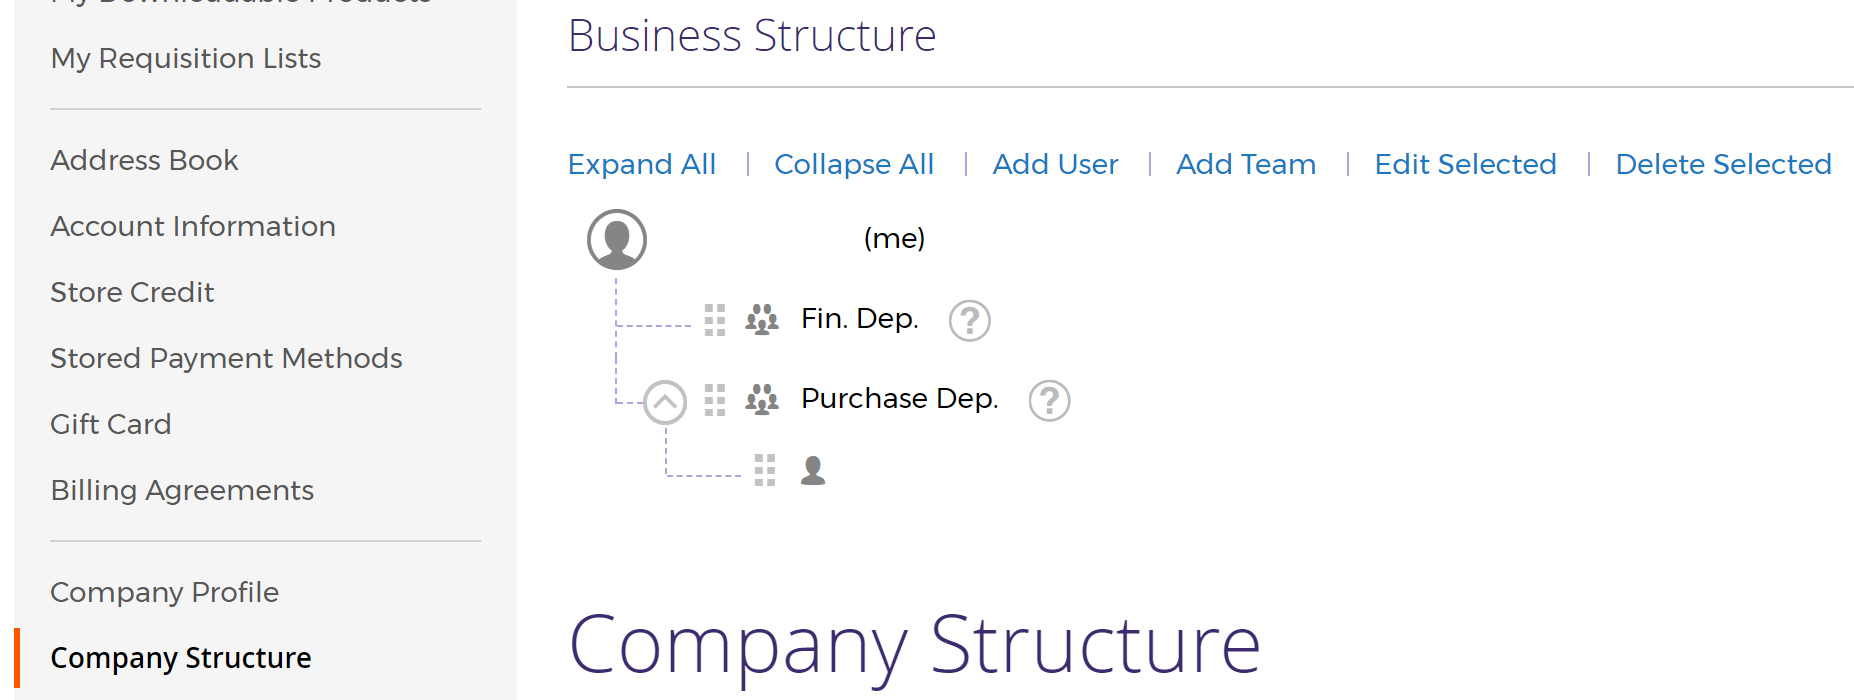 Company structure page